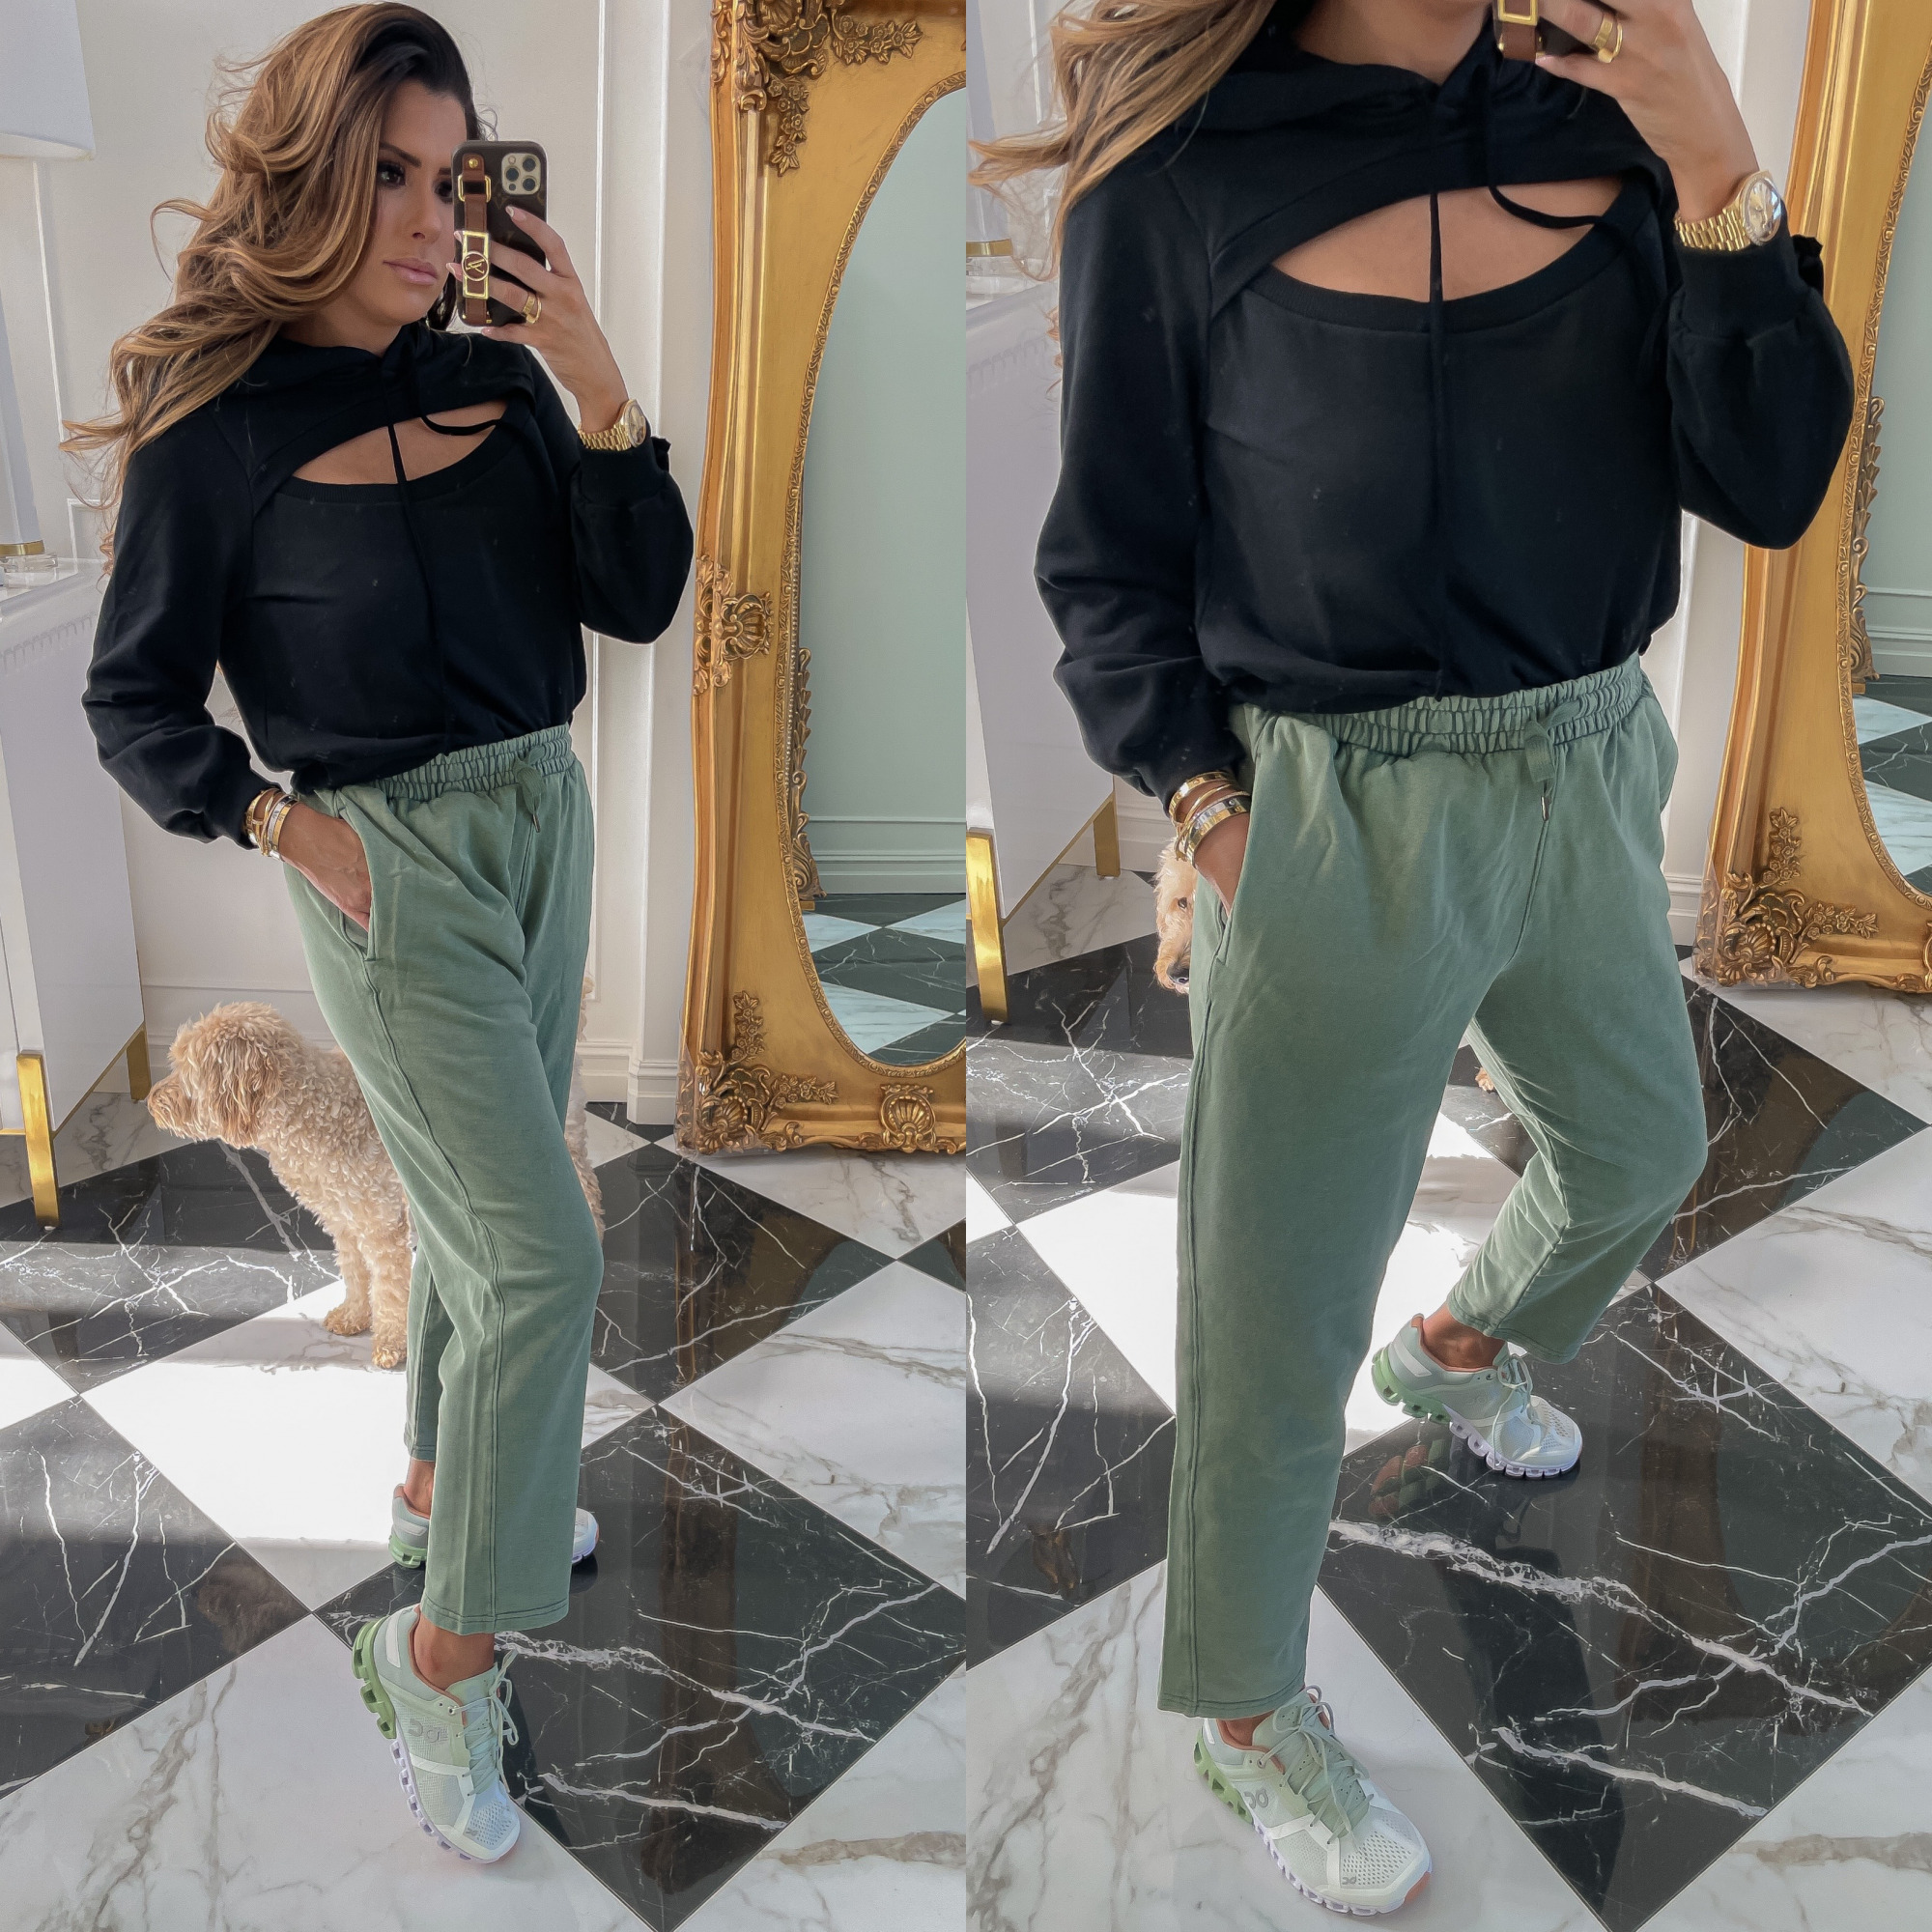 dstrom Anniversary Sale 2021 Picks, best of NSALE 2021, Nordstrom sale must haves blog post, Emily gemma | Nordstrom Anniversary Sale US fashion blog, The Sweetest Thing: image of Emily Gemma wearing a Nordstrom peekaboo hoodie, drawstring pants, and athletic sneakers.